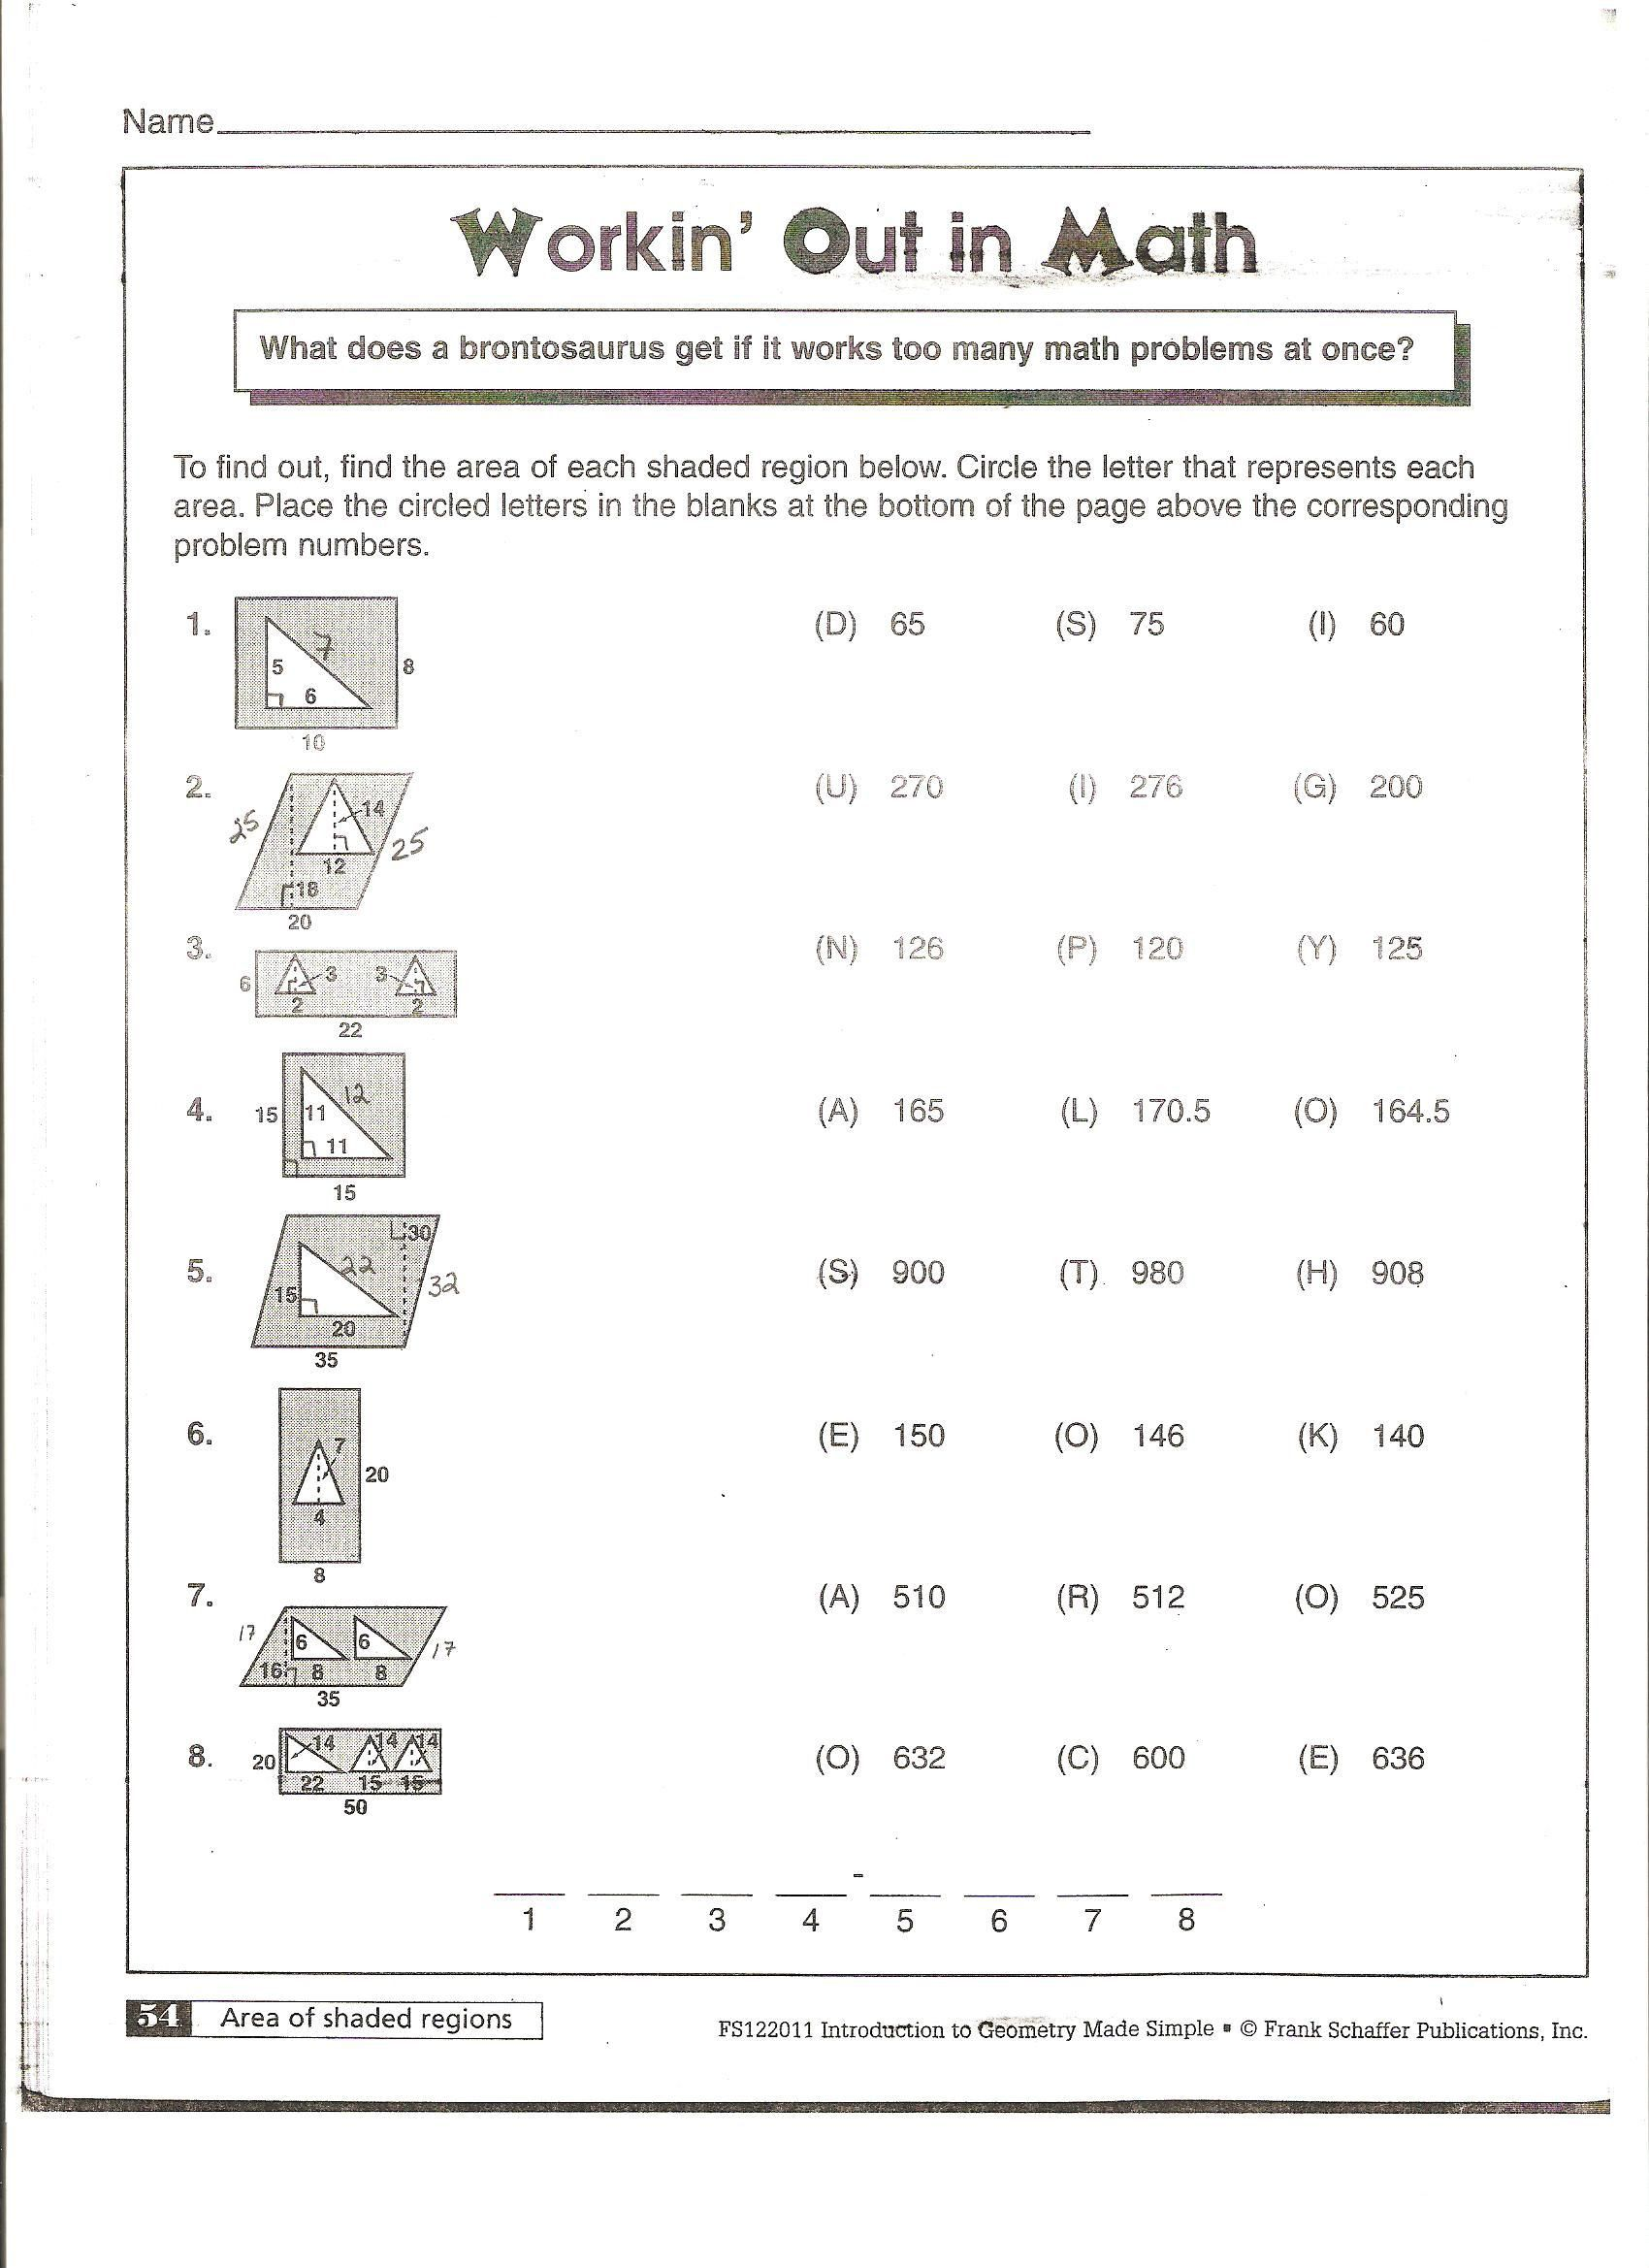 Polygon Worksheets 5th Grade Area Of Polygons Worksheets Free In 2020 Area And Perimeter Worksheets Perimeter Worksheets Angles Worksheet